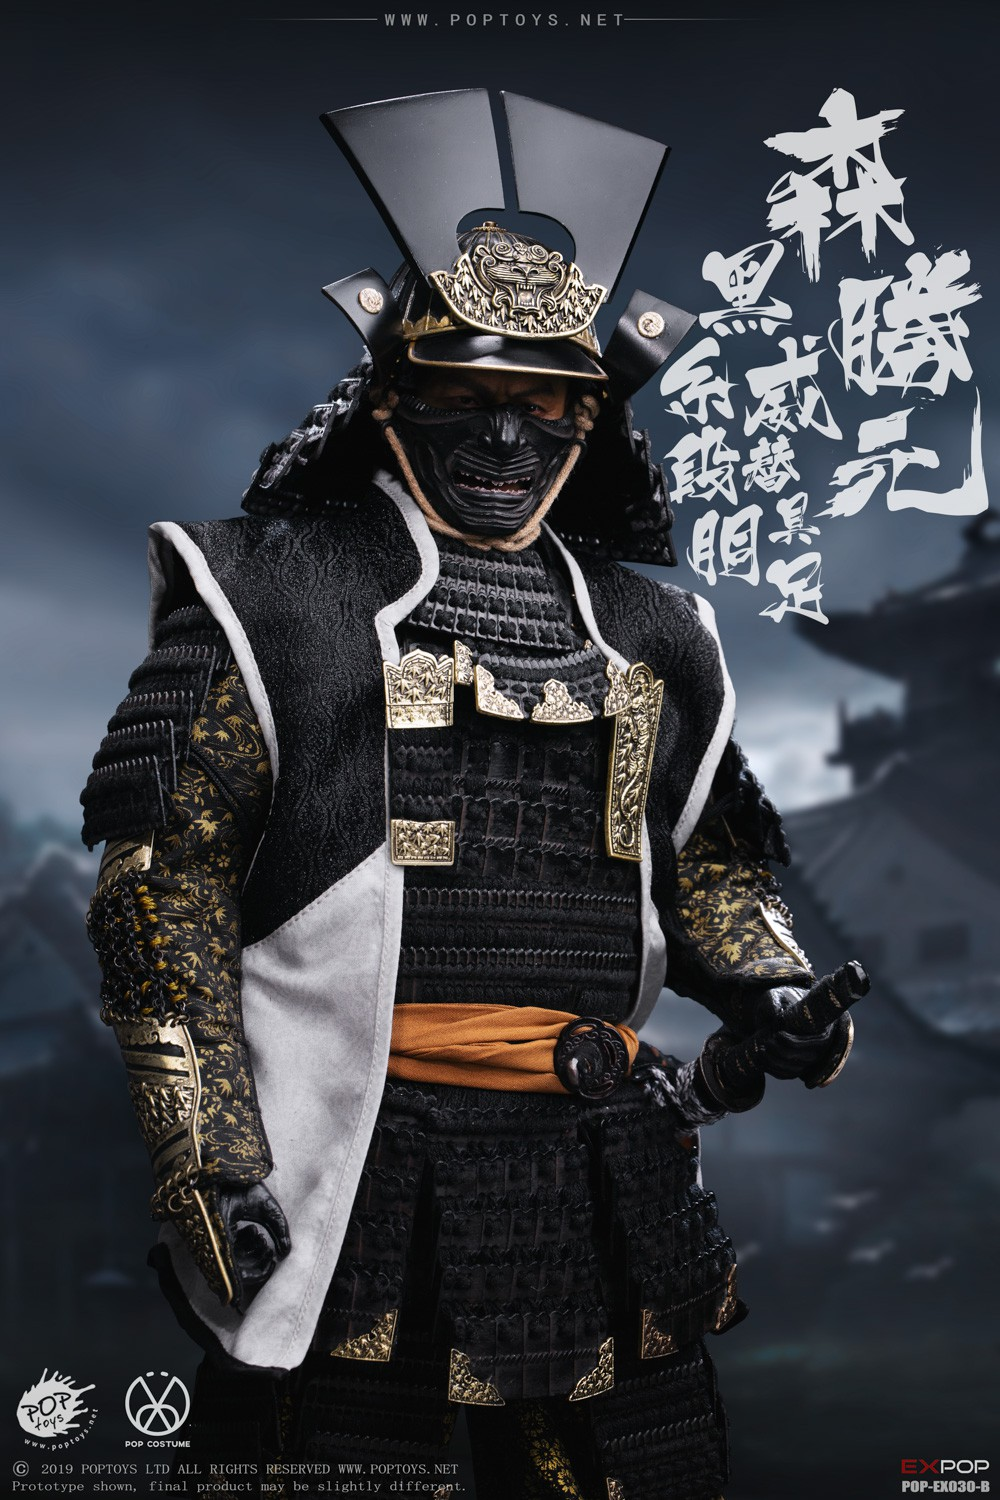 japanese - NEW PRODUCT: PopToys: 1/6 Benevolent Samurai EX30 Standard Edition/Deluxe Edition/Petition Edition [A piece of material 100% alloy] 16324411